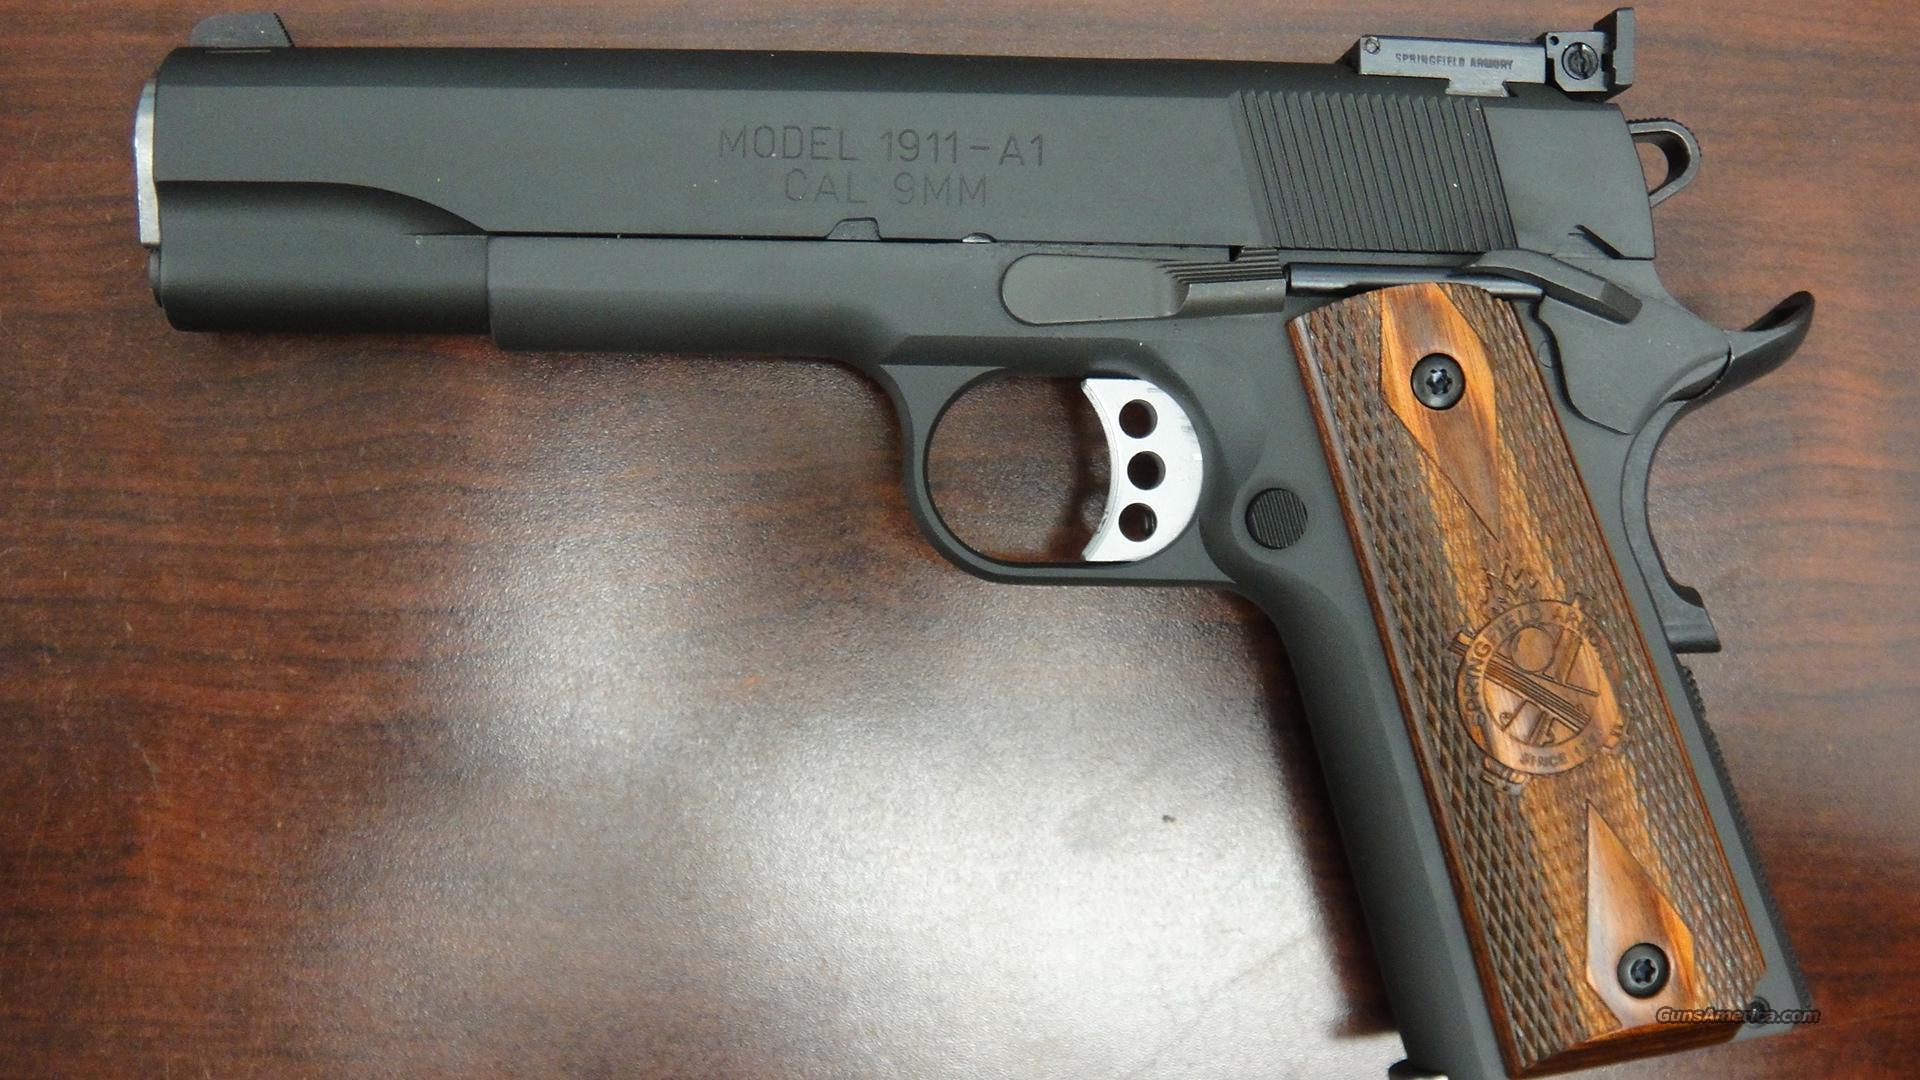 Springfield armory 1911-A1 Range Officer in 9mm